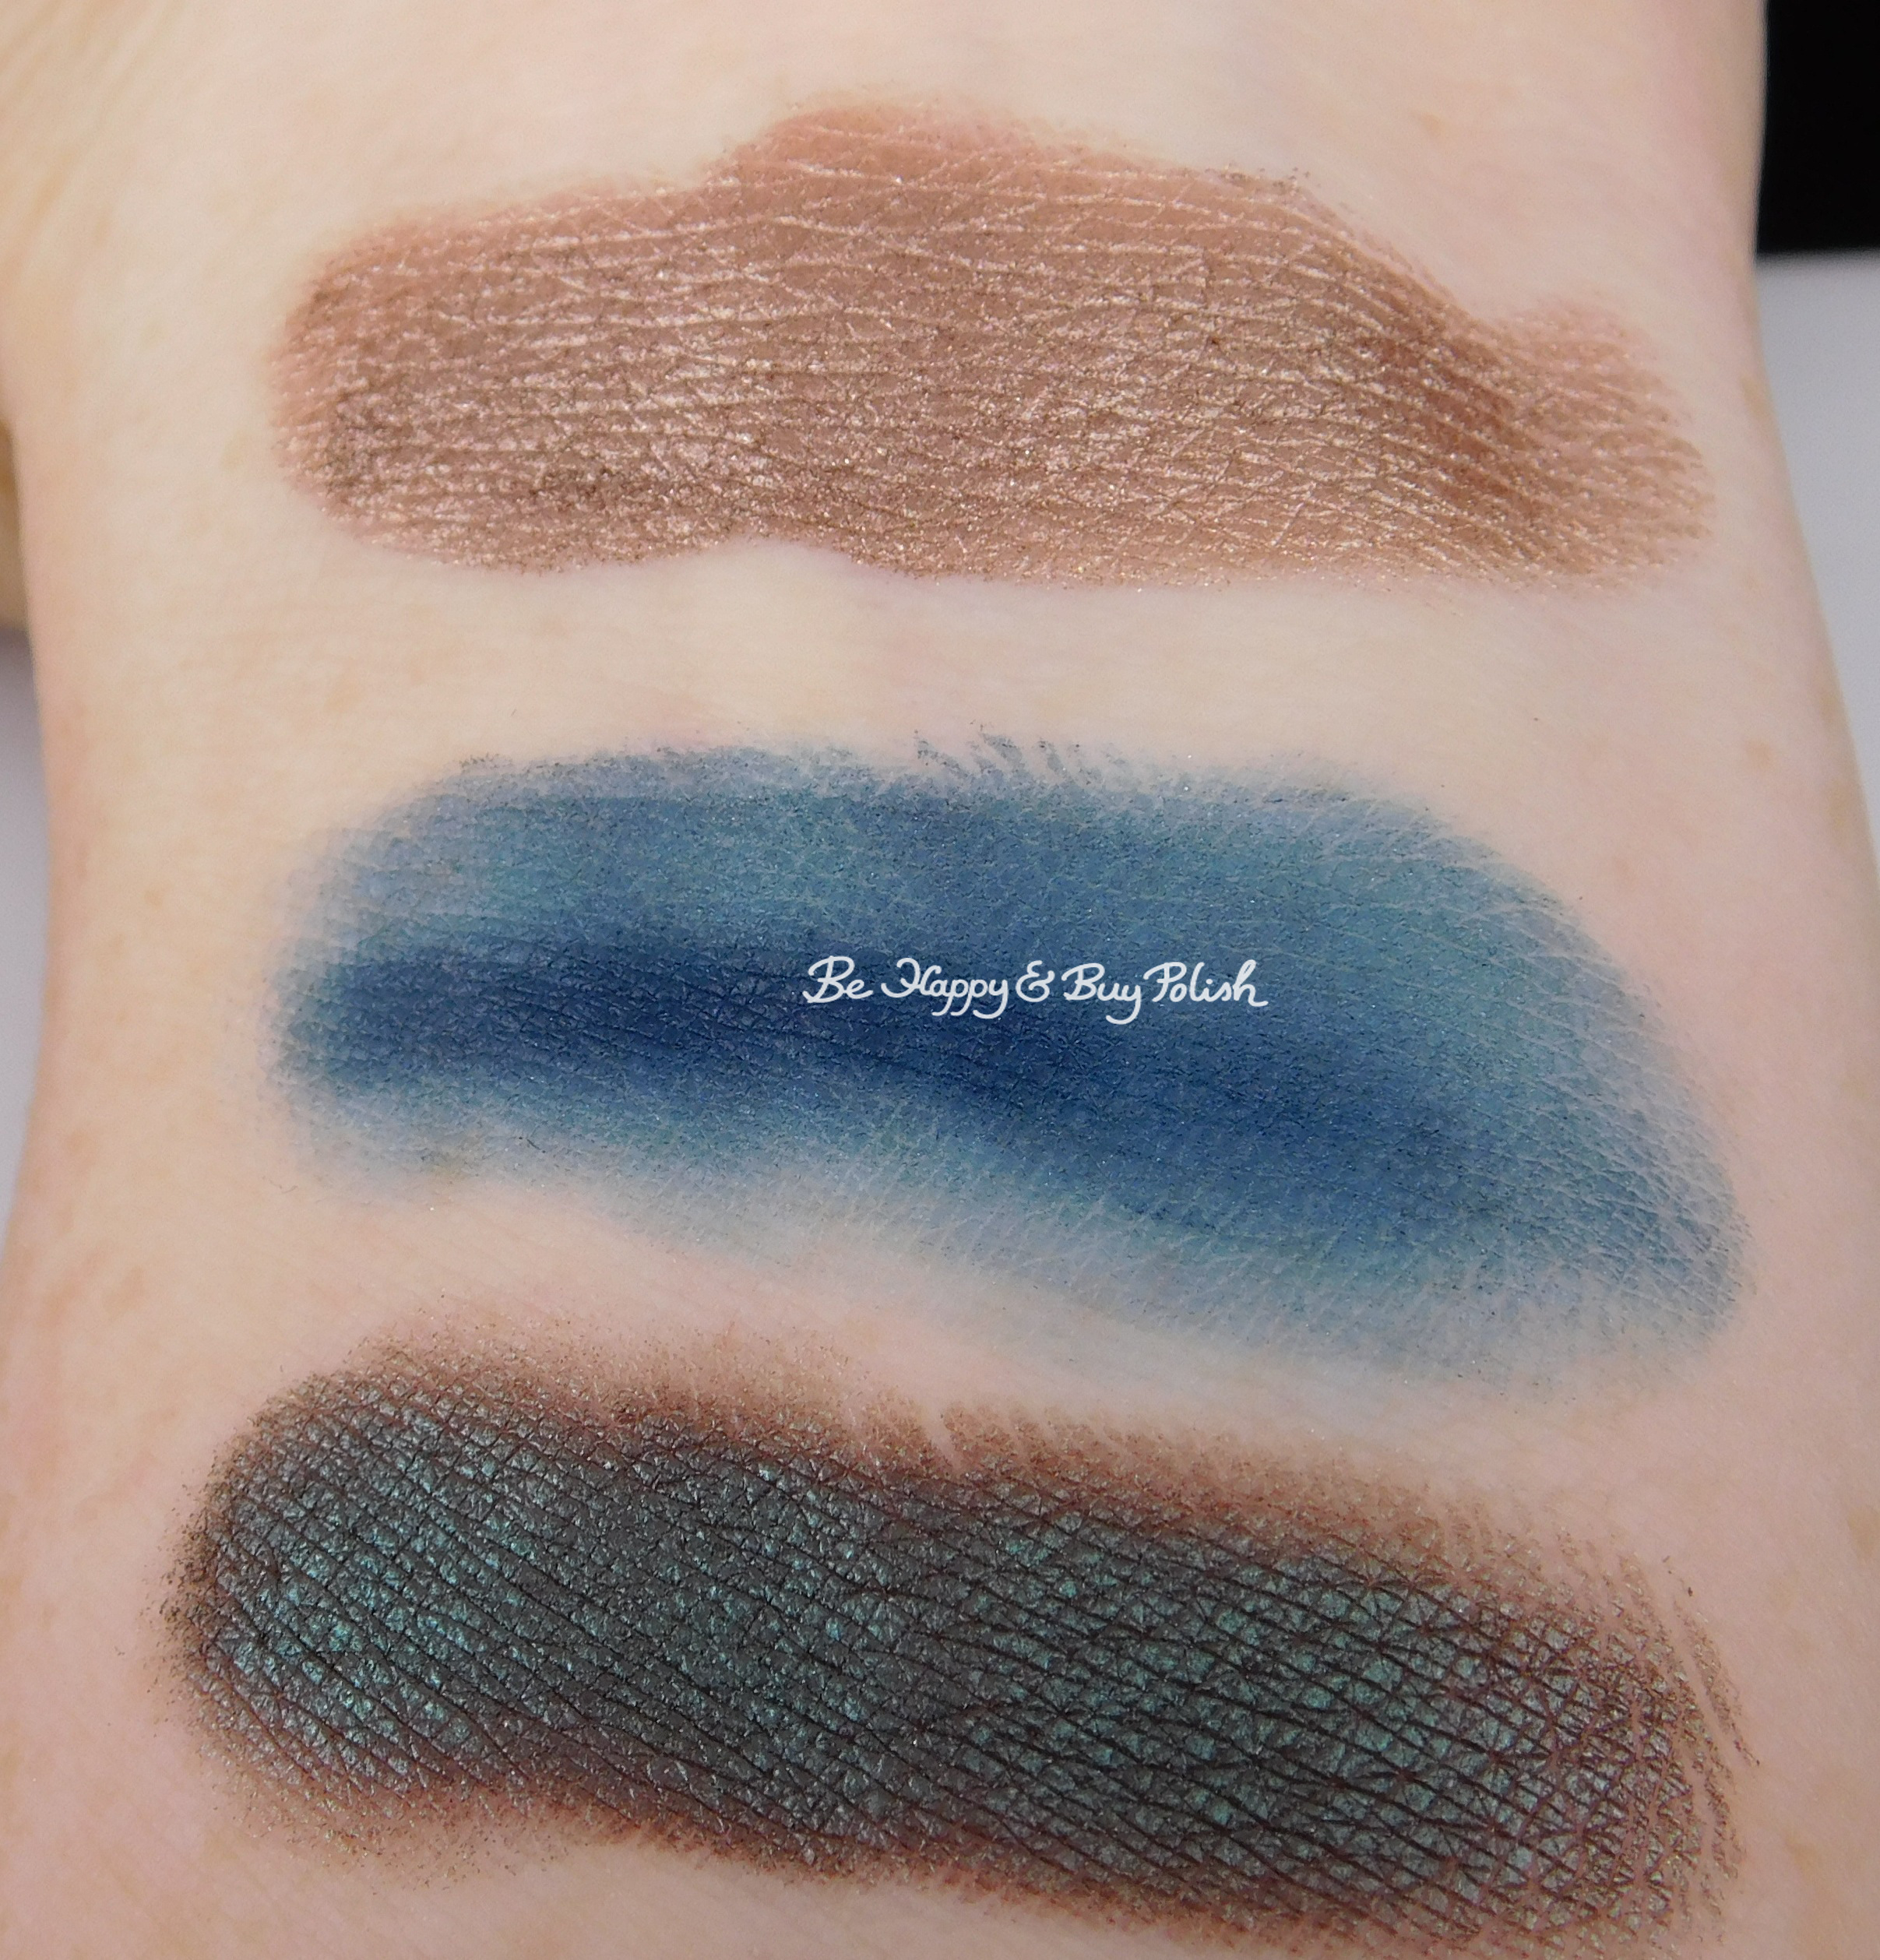 Forum on this topic: Wet n' Wild Introduces The Zodiac Collection, wet-n-wild-introduces-the-zodiac-collection/